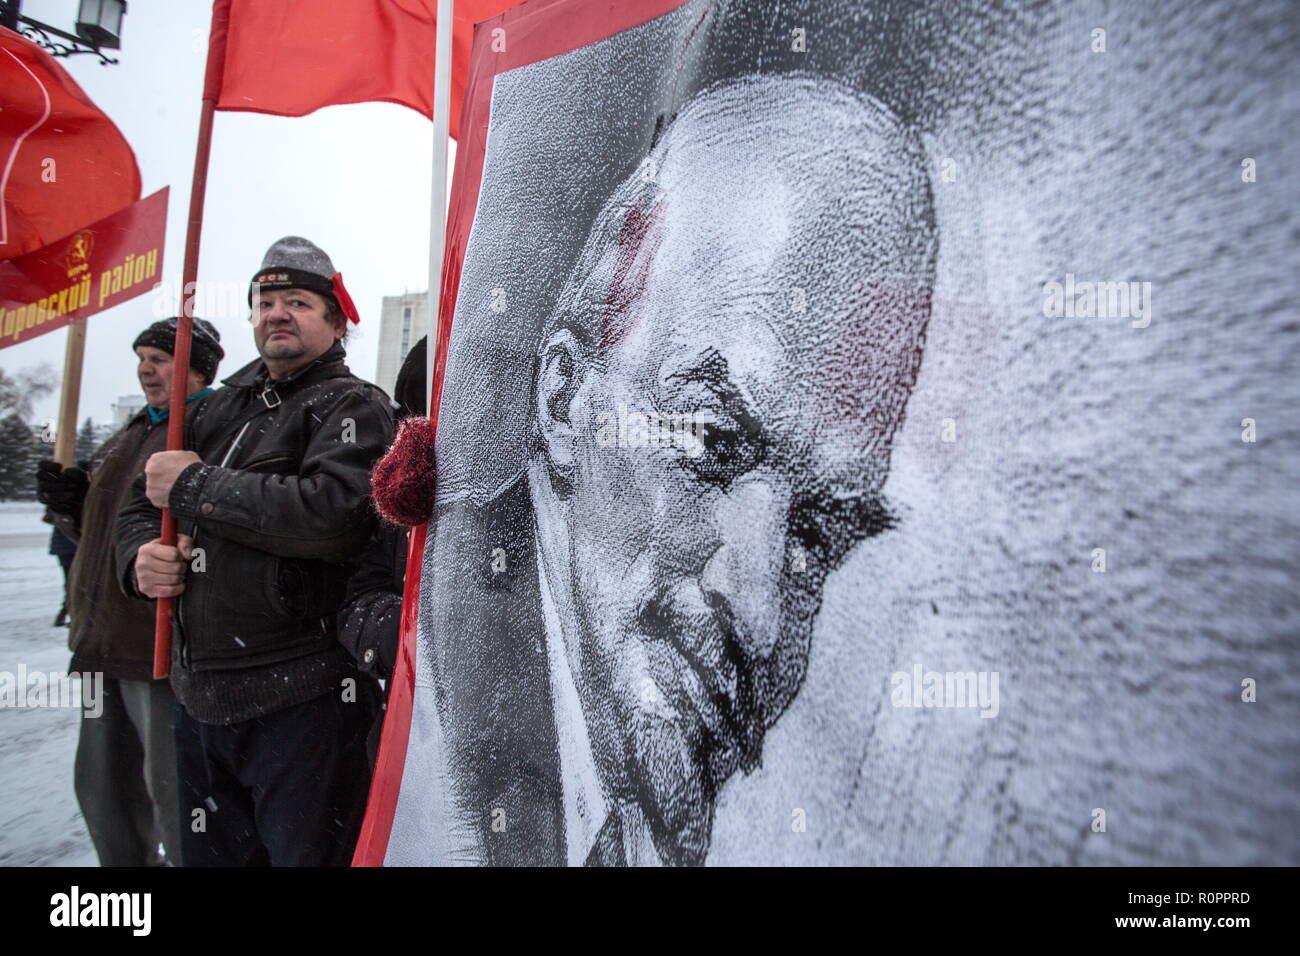 Omsk, Russia. 07th Nov, 2018. OMSK, RUSSIA - NOVEMBER 7, 2018: People take part in a rally and march organized by the Russian Communist Party (KPRF) to mark the 101st anniversary of the 1917 October Revolution. Dmitry Feoktistov/TASS Credit: ITAR-TASS News Agency/Alamy Live News - Stock Image